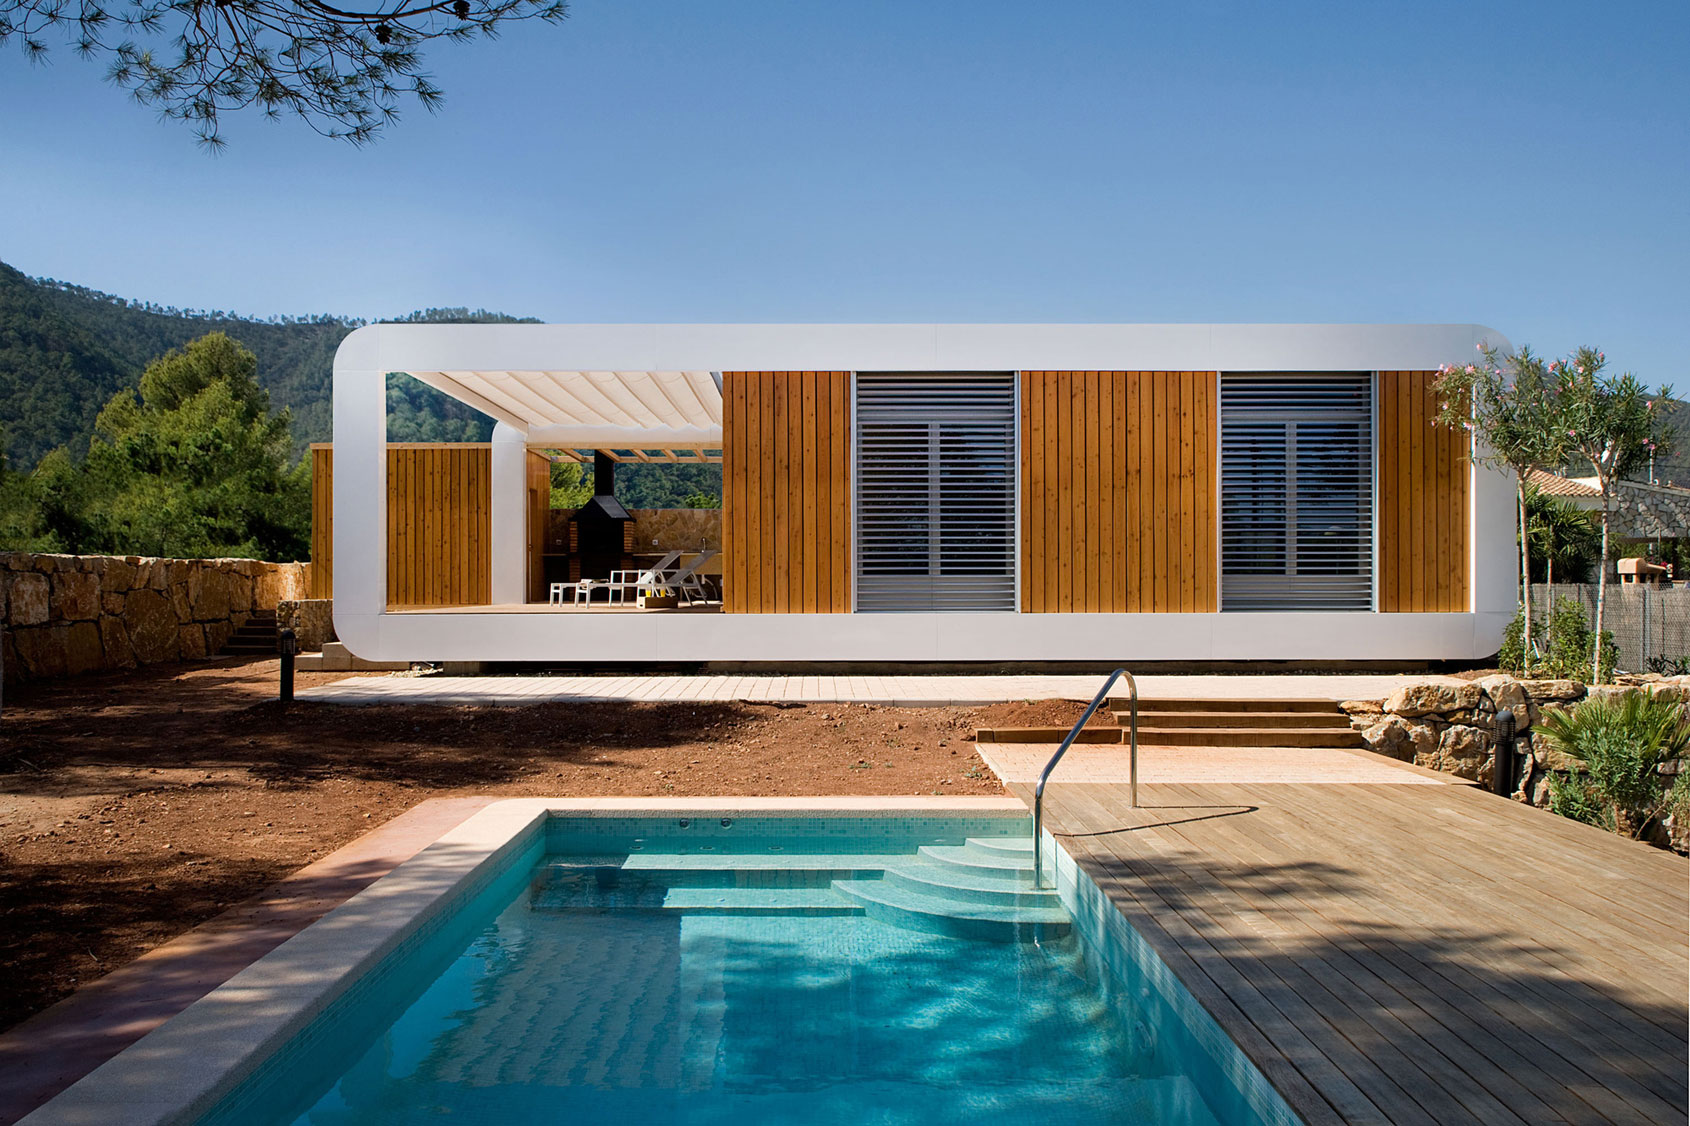 Eco-Friendly and Energy Efficiency with Mobile Device Control of El Refugio Inteligente by NOEM-04